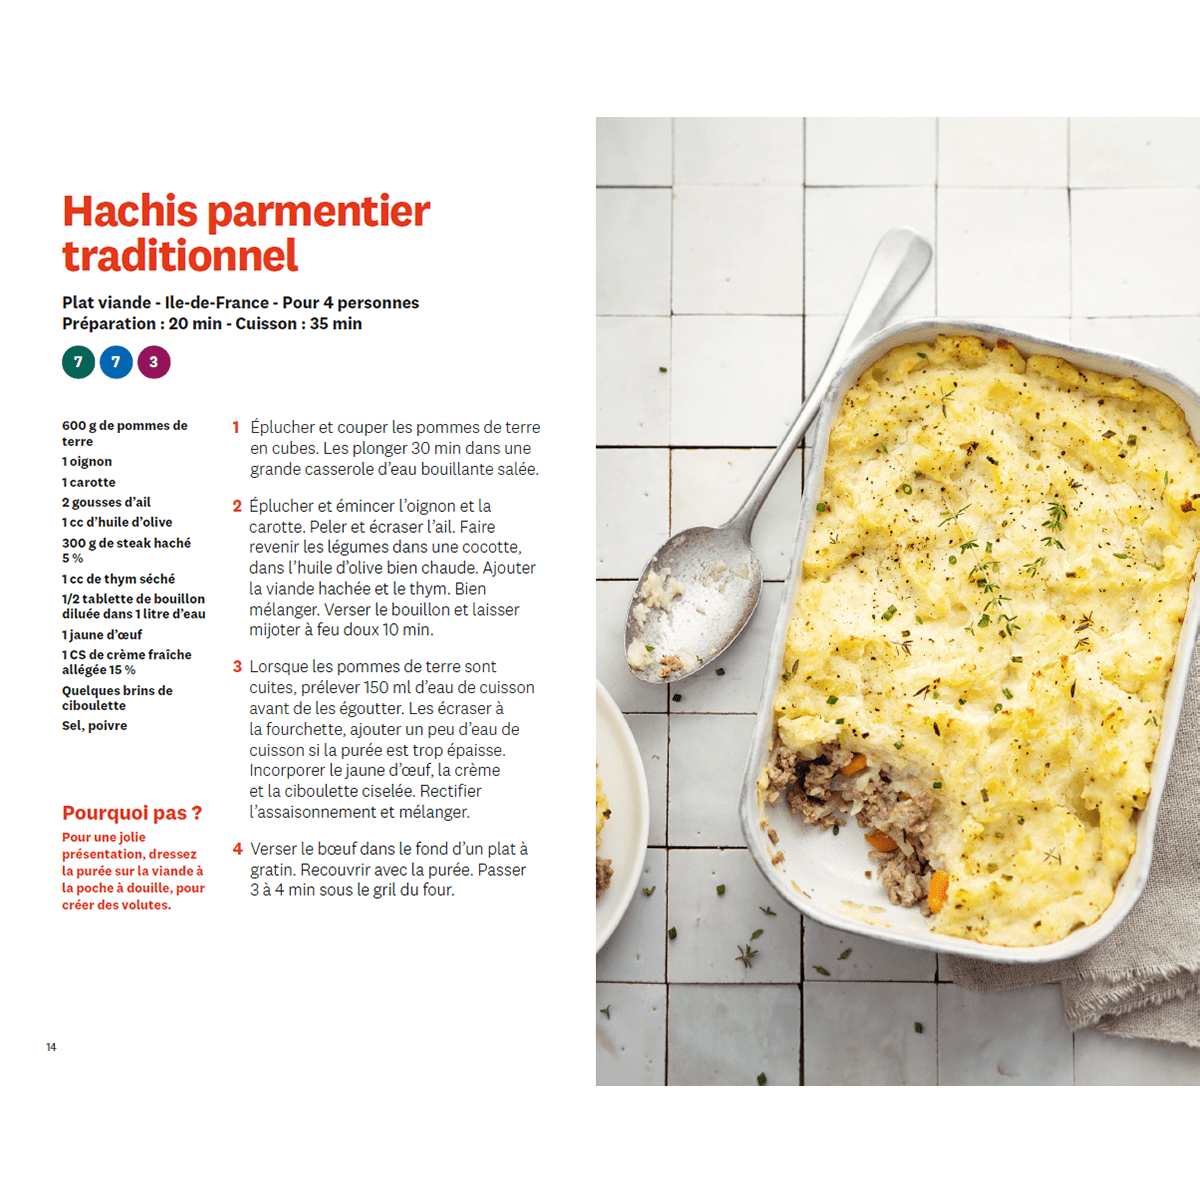 Recettes de nos regions hachis parmentier traditionnel